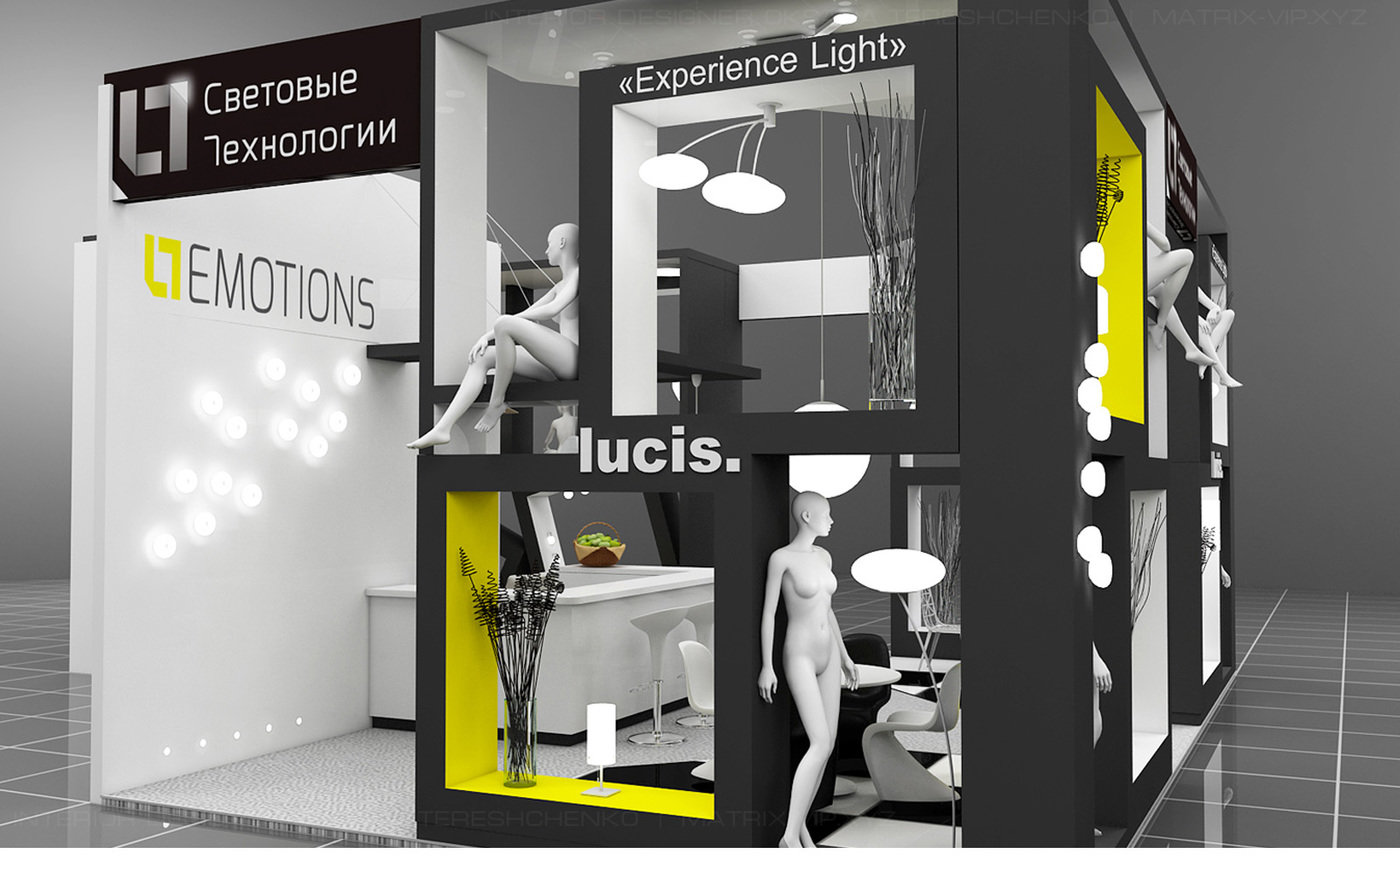 Exhibition Stand Lighting : Exhibition stand of the company lighting technology by oksana